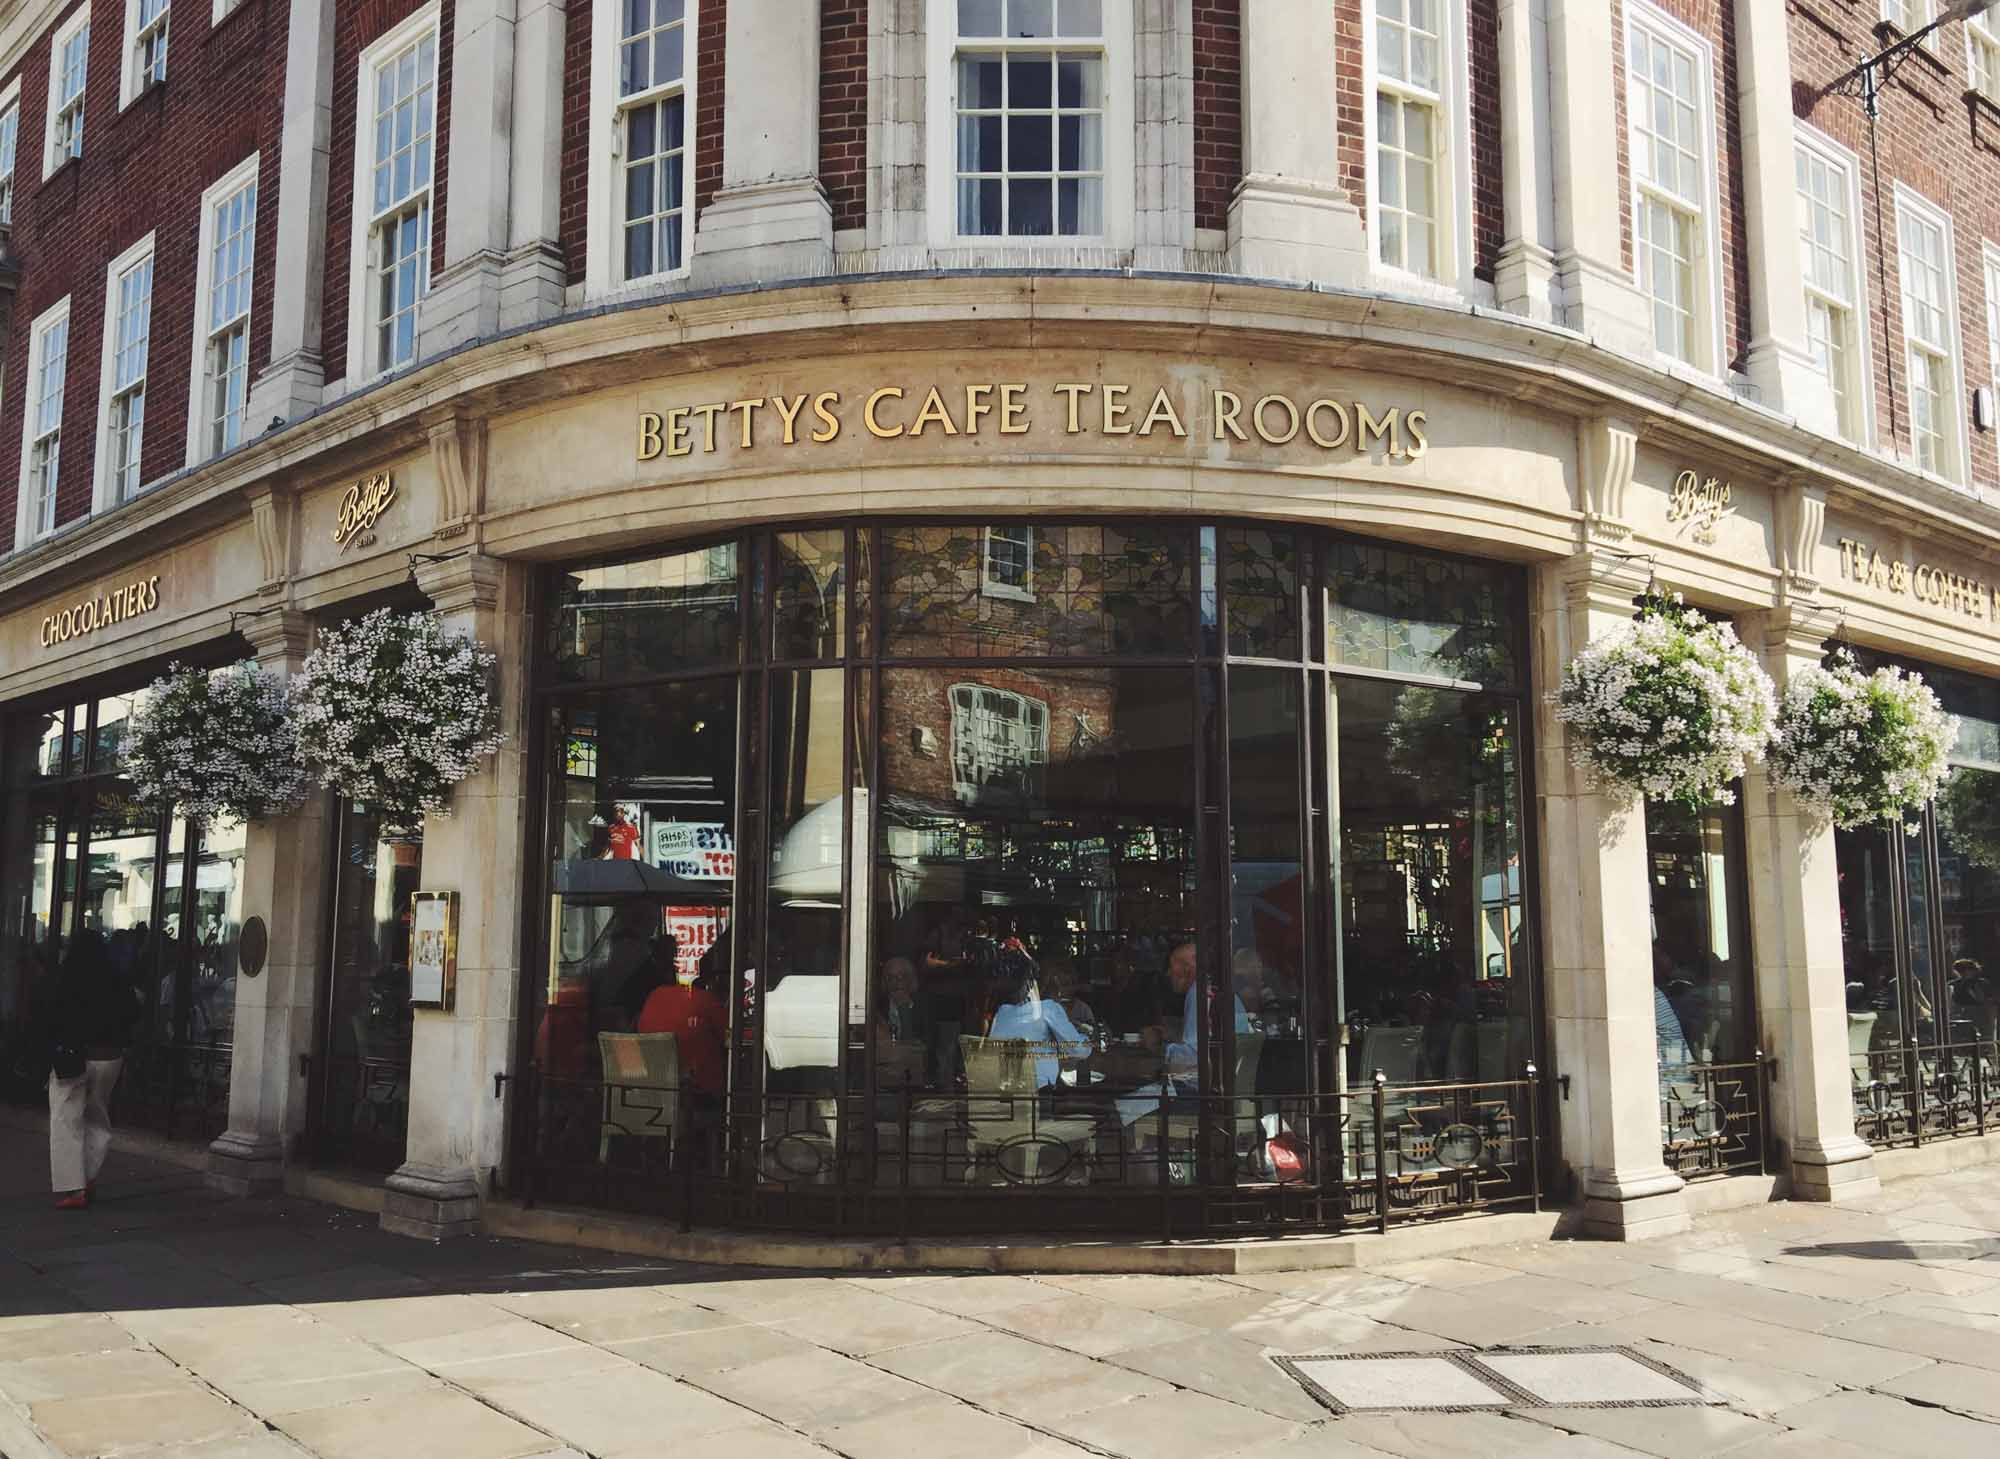 Best things to do in York - Bettys Tea Rooms